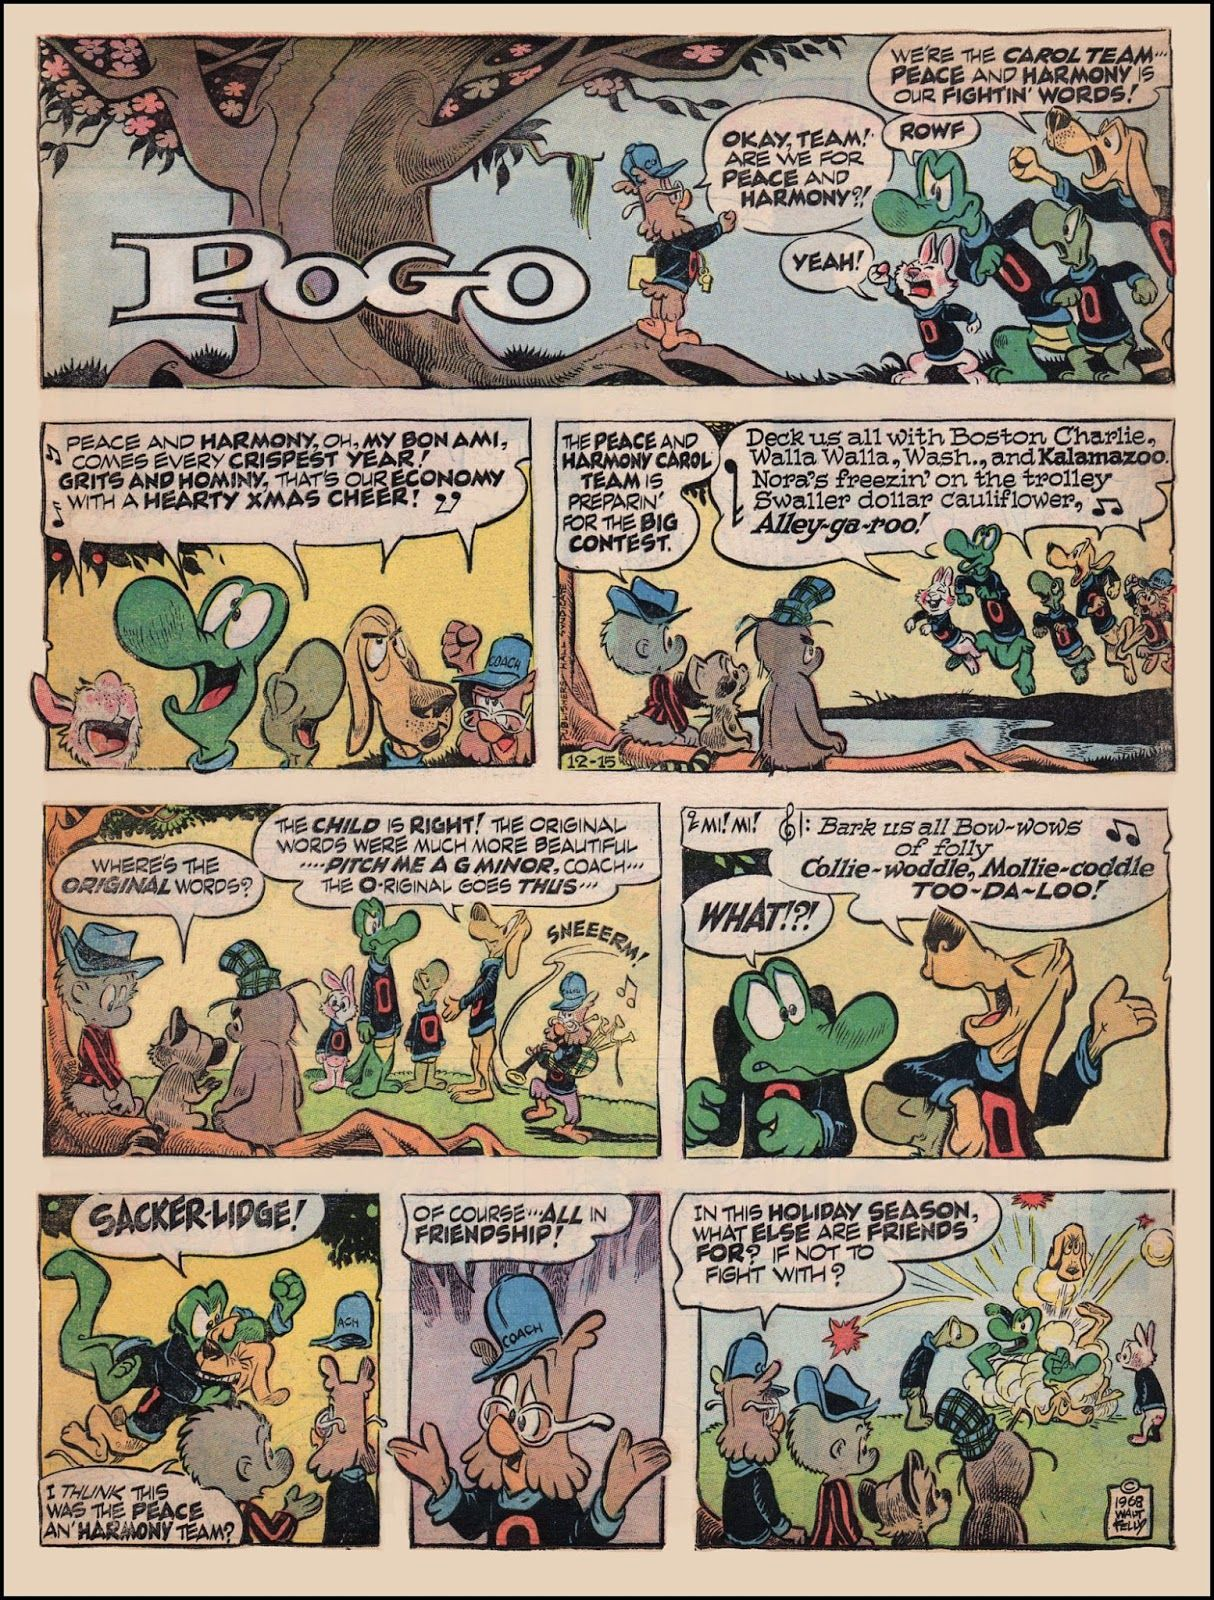 Pogo Comic Strip: The Peace & Harmony Carol Team